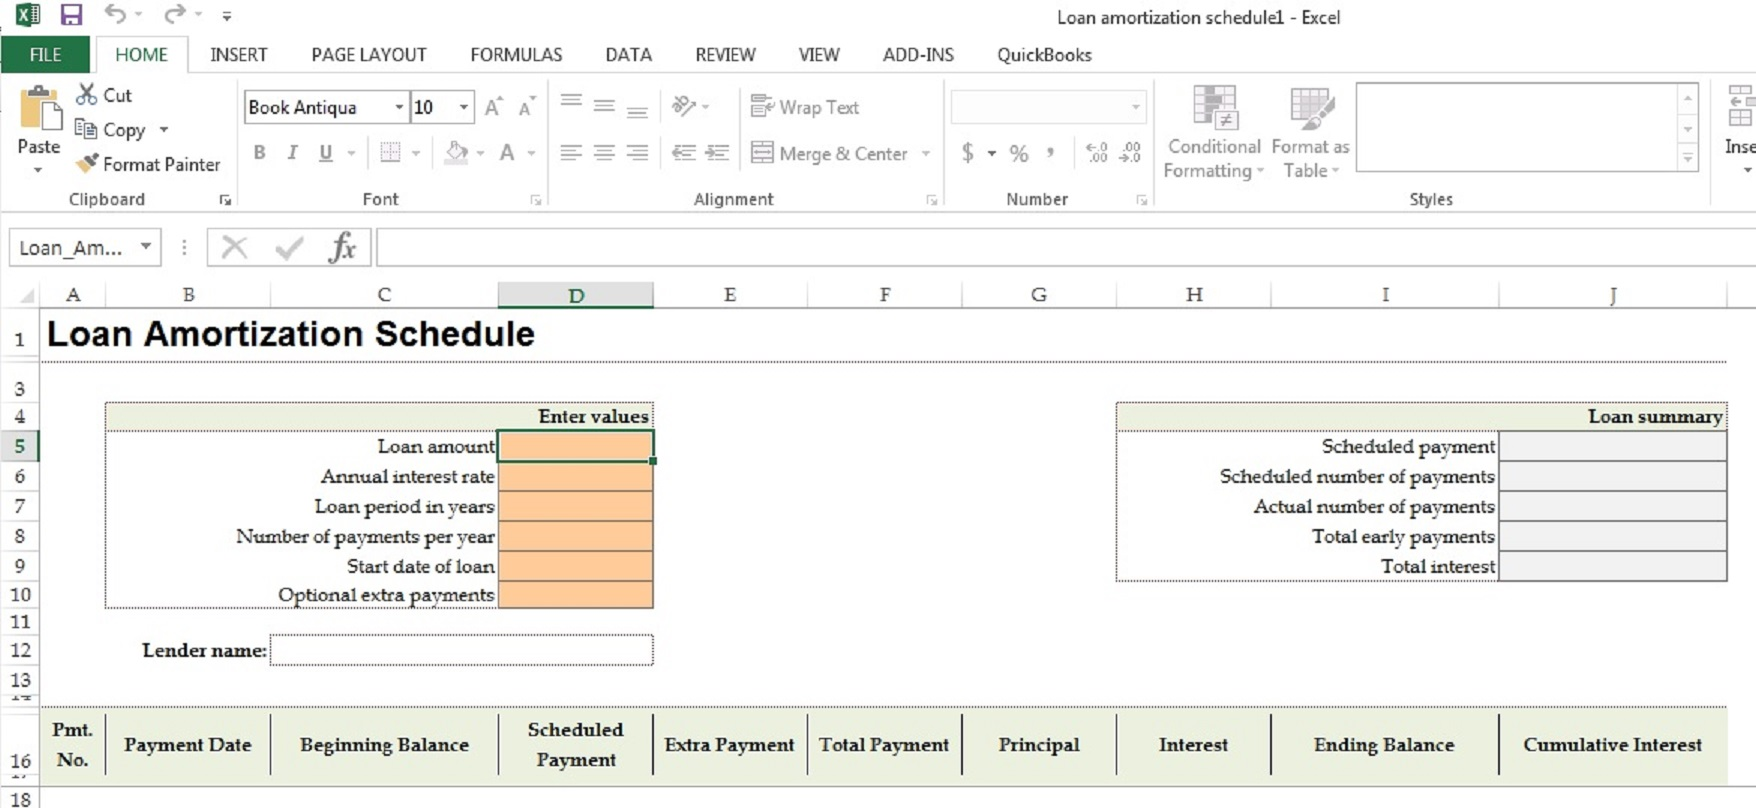 loan-amortization-schedule-template enlarged